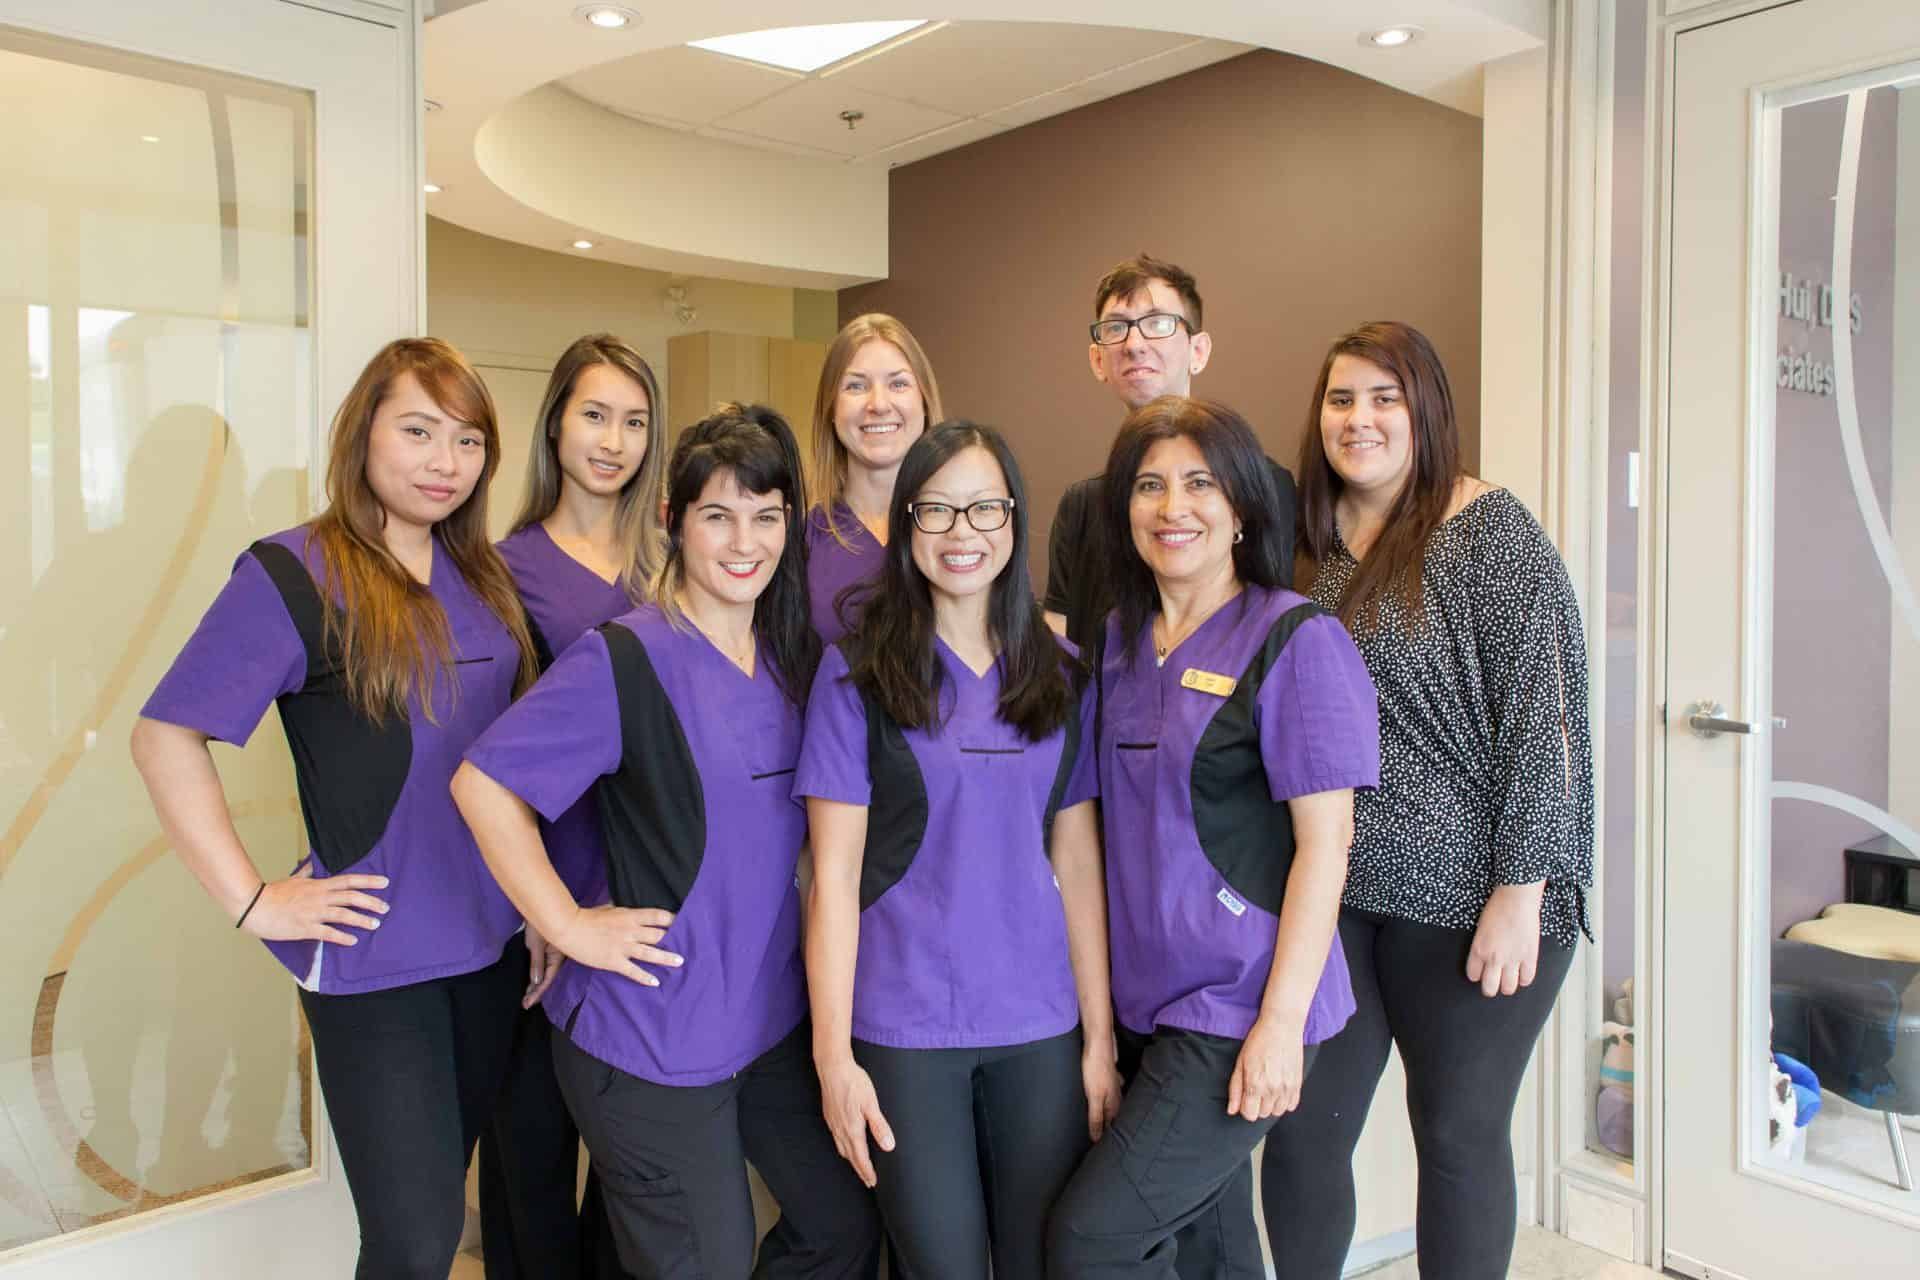 orthodontics-team-richteamedia360